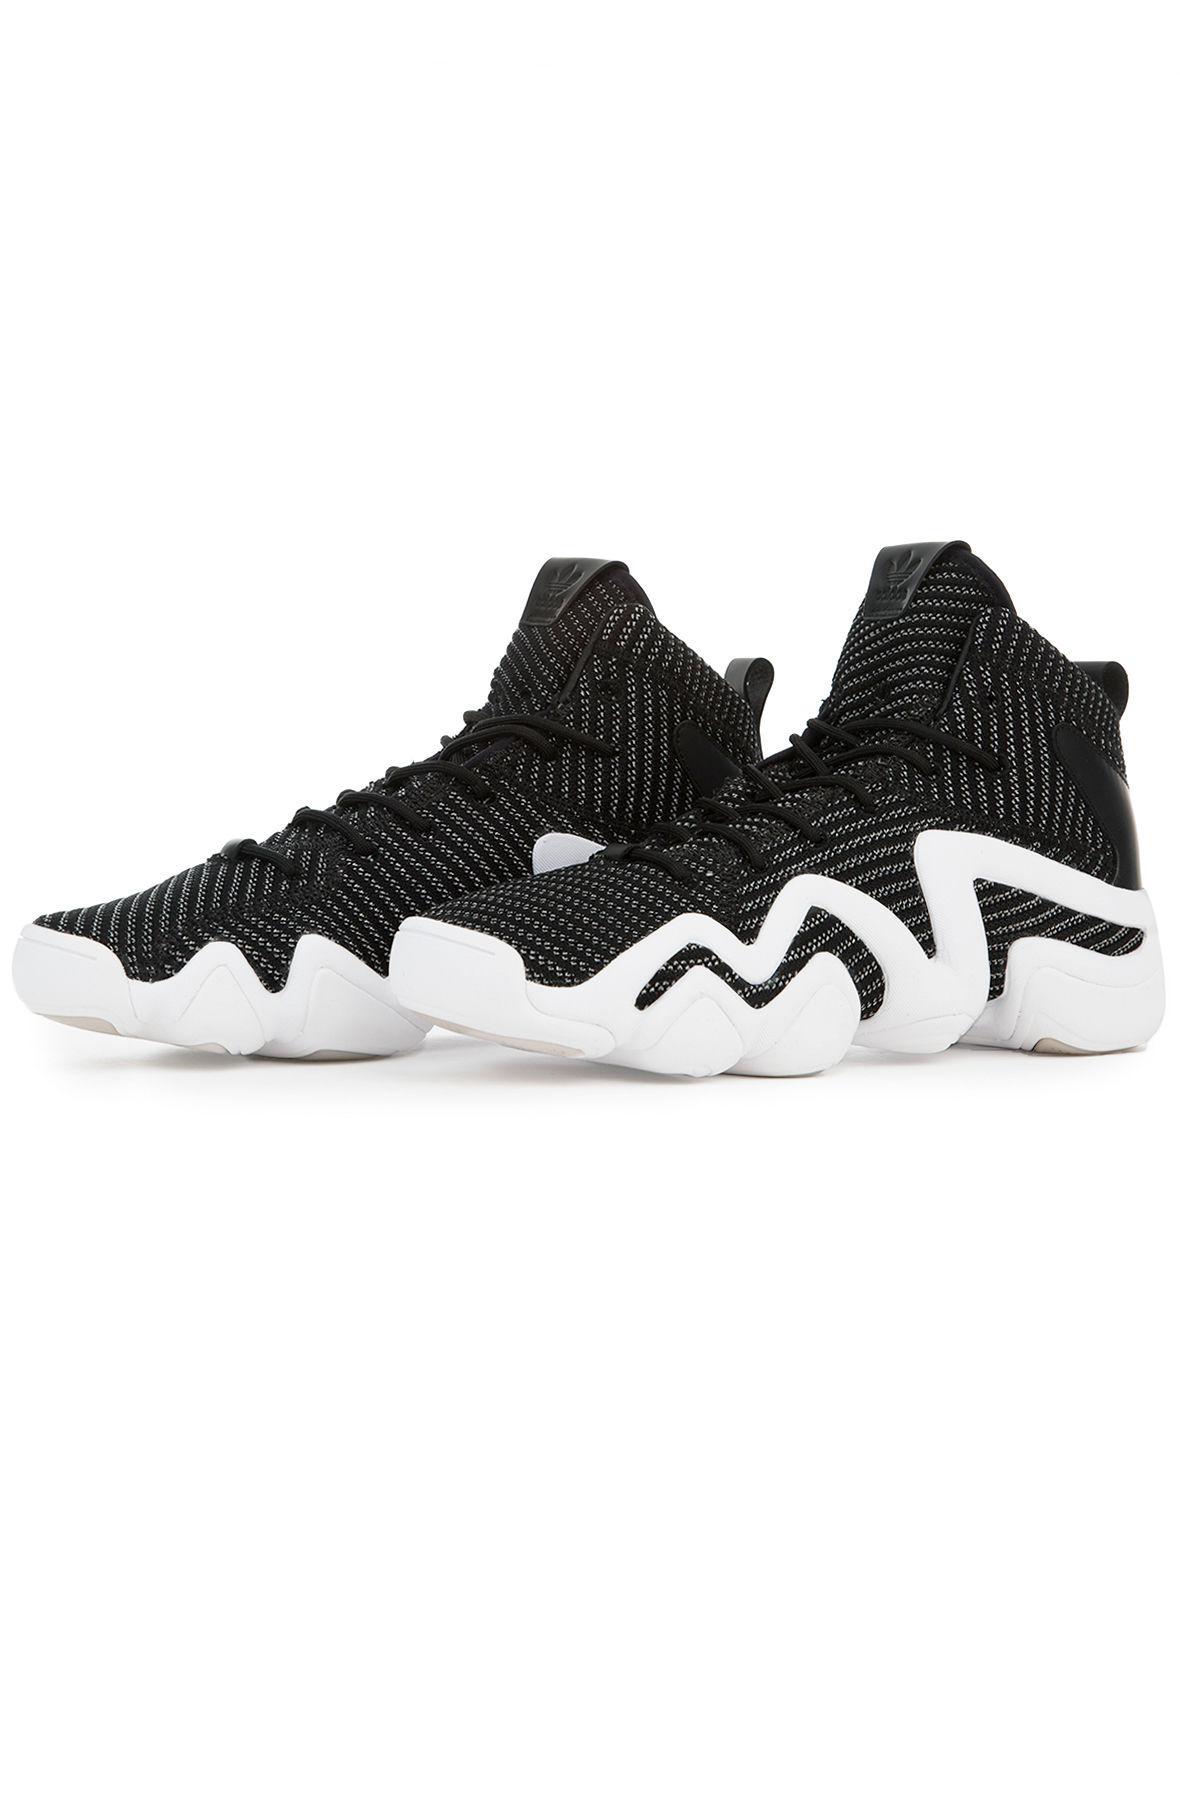 uk availability 6e71a 36179 Lyst - Adidas The Crazy 8 Adv Primeknit in Black